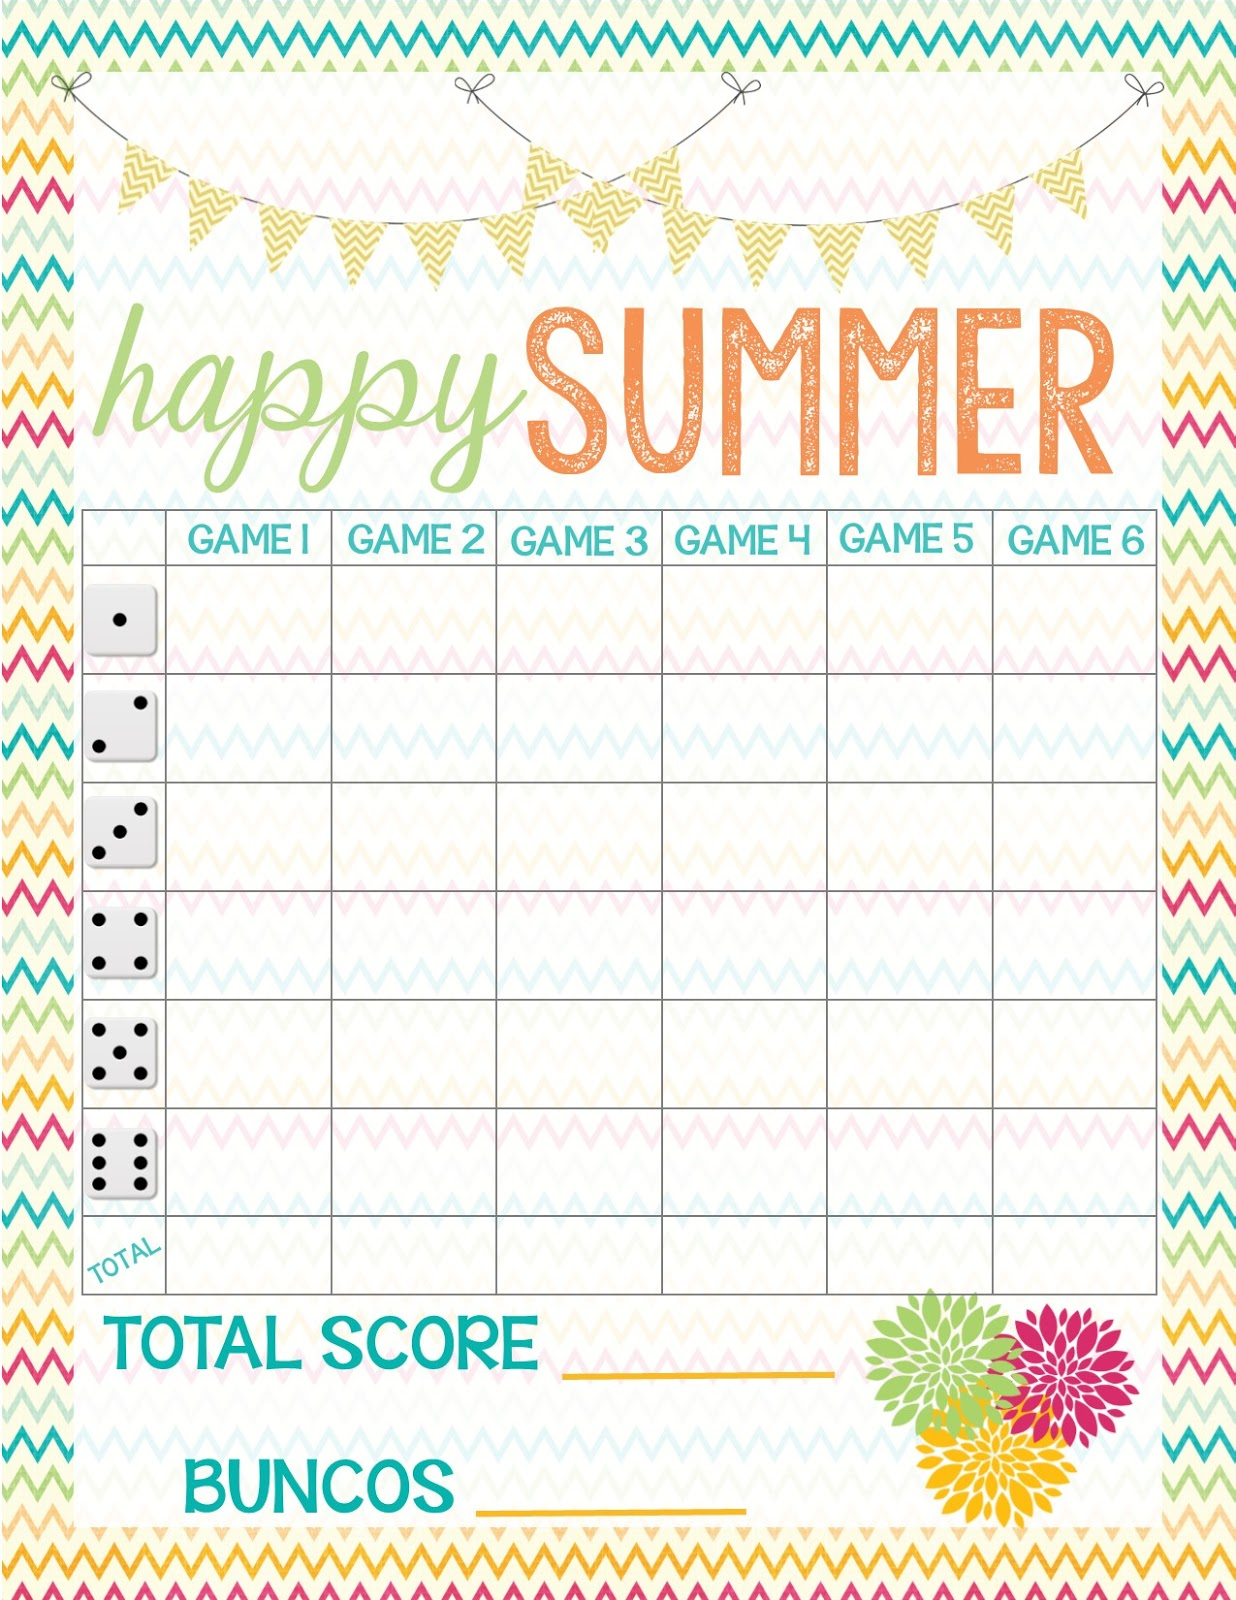 Obsessed image for printable bunco score sheets